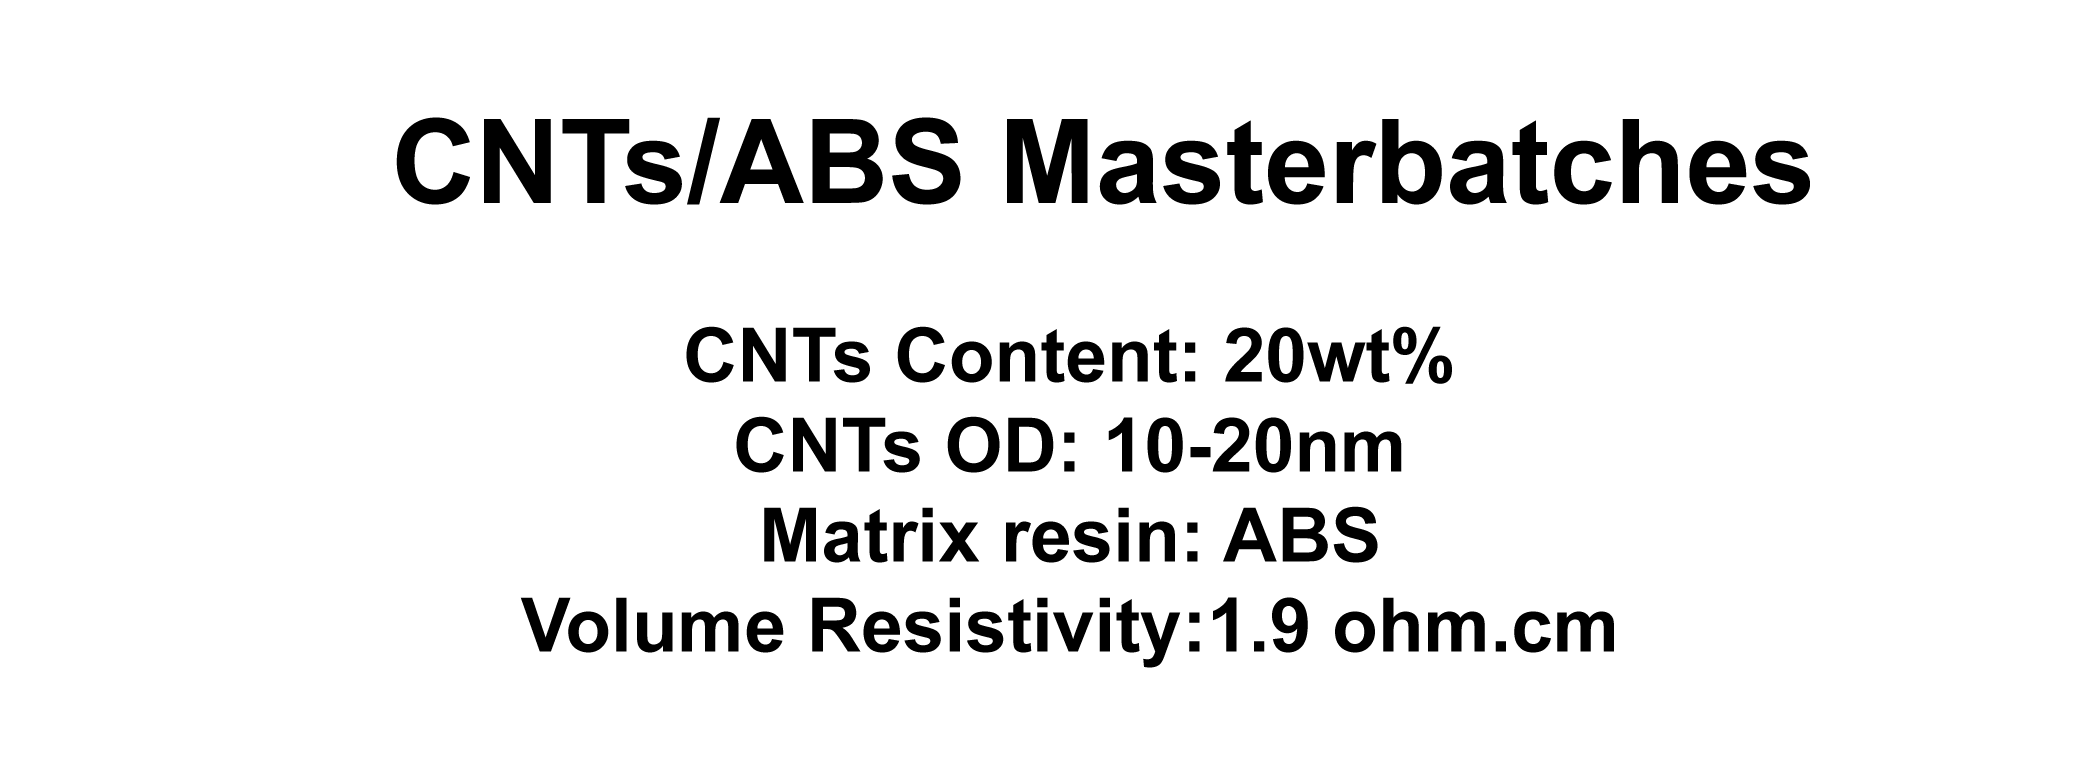 CNTs/ABS Masterbatches